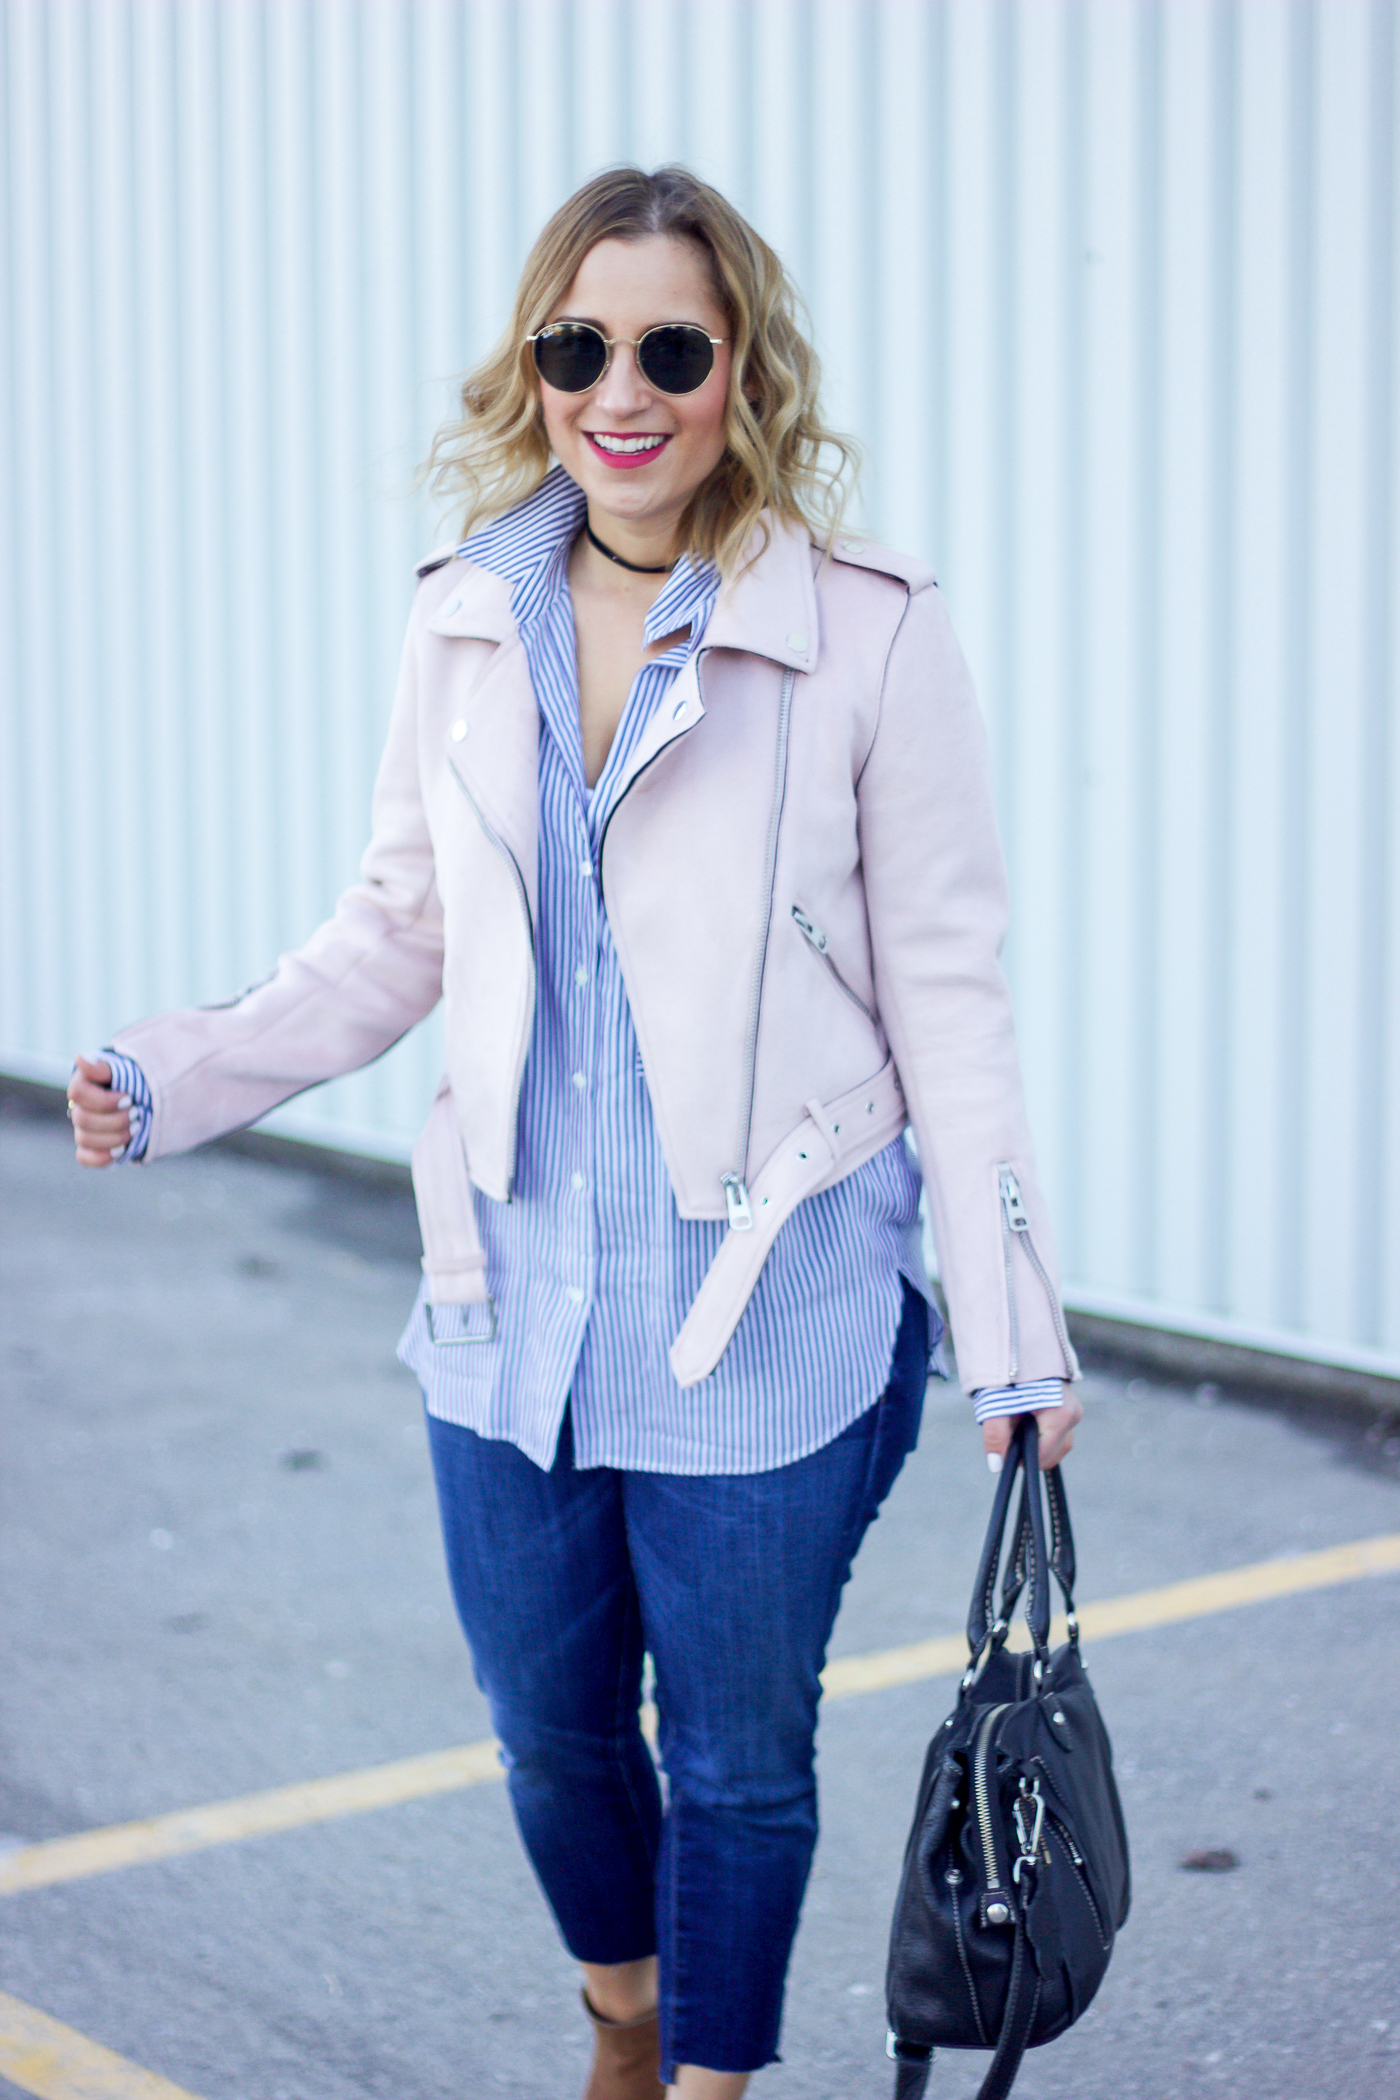 Pastel pink faux suede jacket from Zara is a must-have for spring